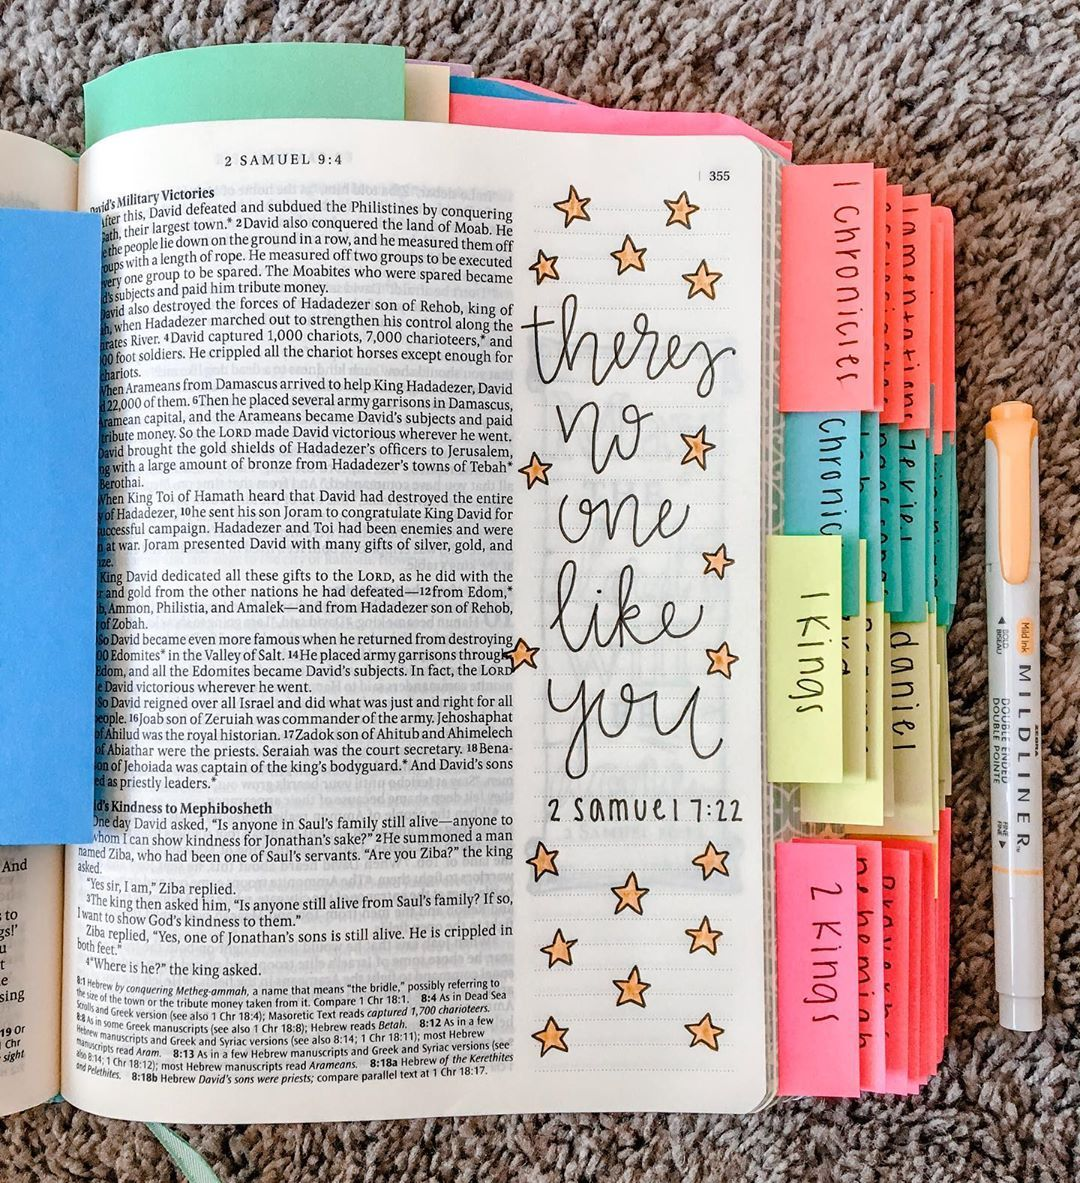 """✰ Kaley's Bible Journaling ✰ on Instagram: """"There is no one like you God, there is no greater love than yours, and there is no one greater than you"""